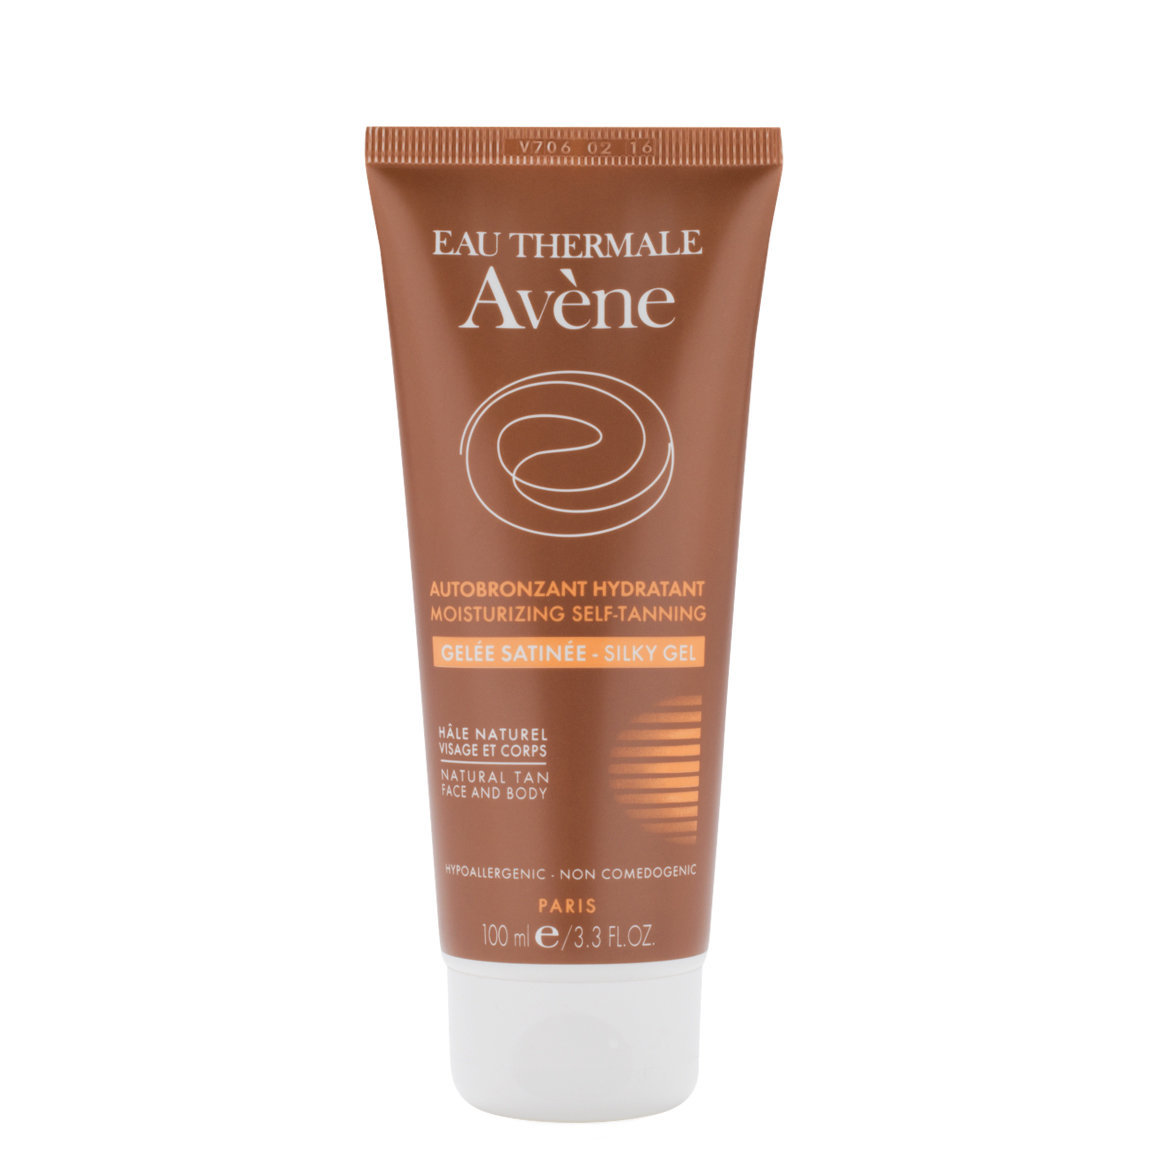 Eau Thermale Avène Moisturizing Self-Tanning Silky Gel product swatch.